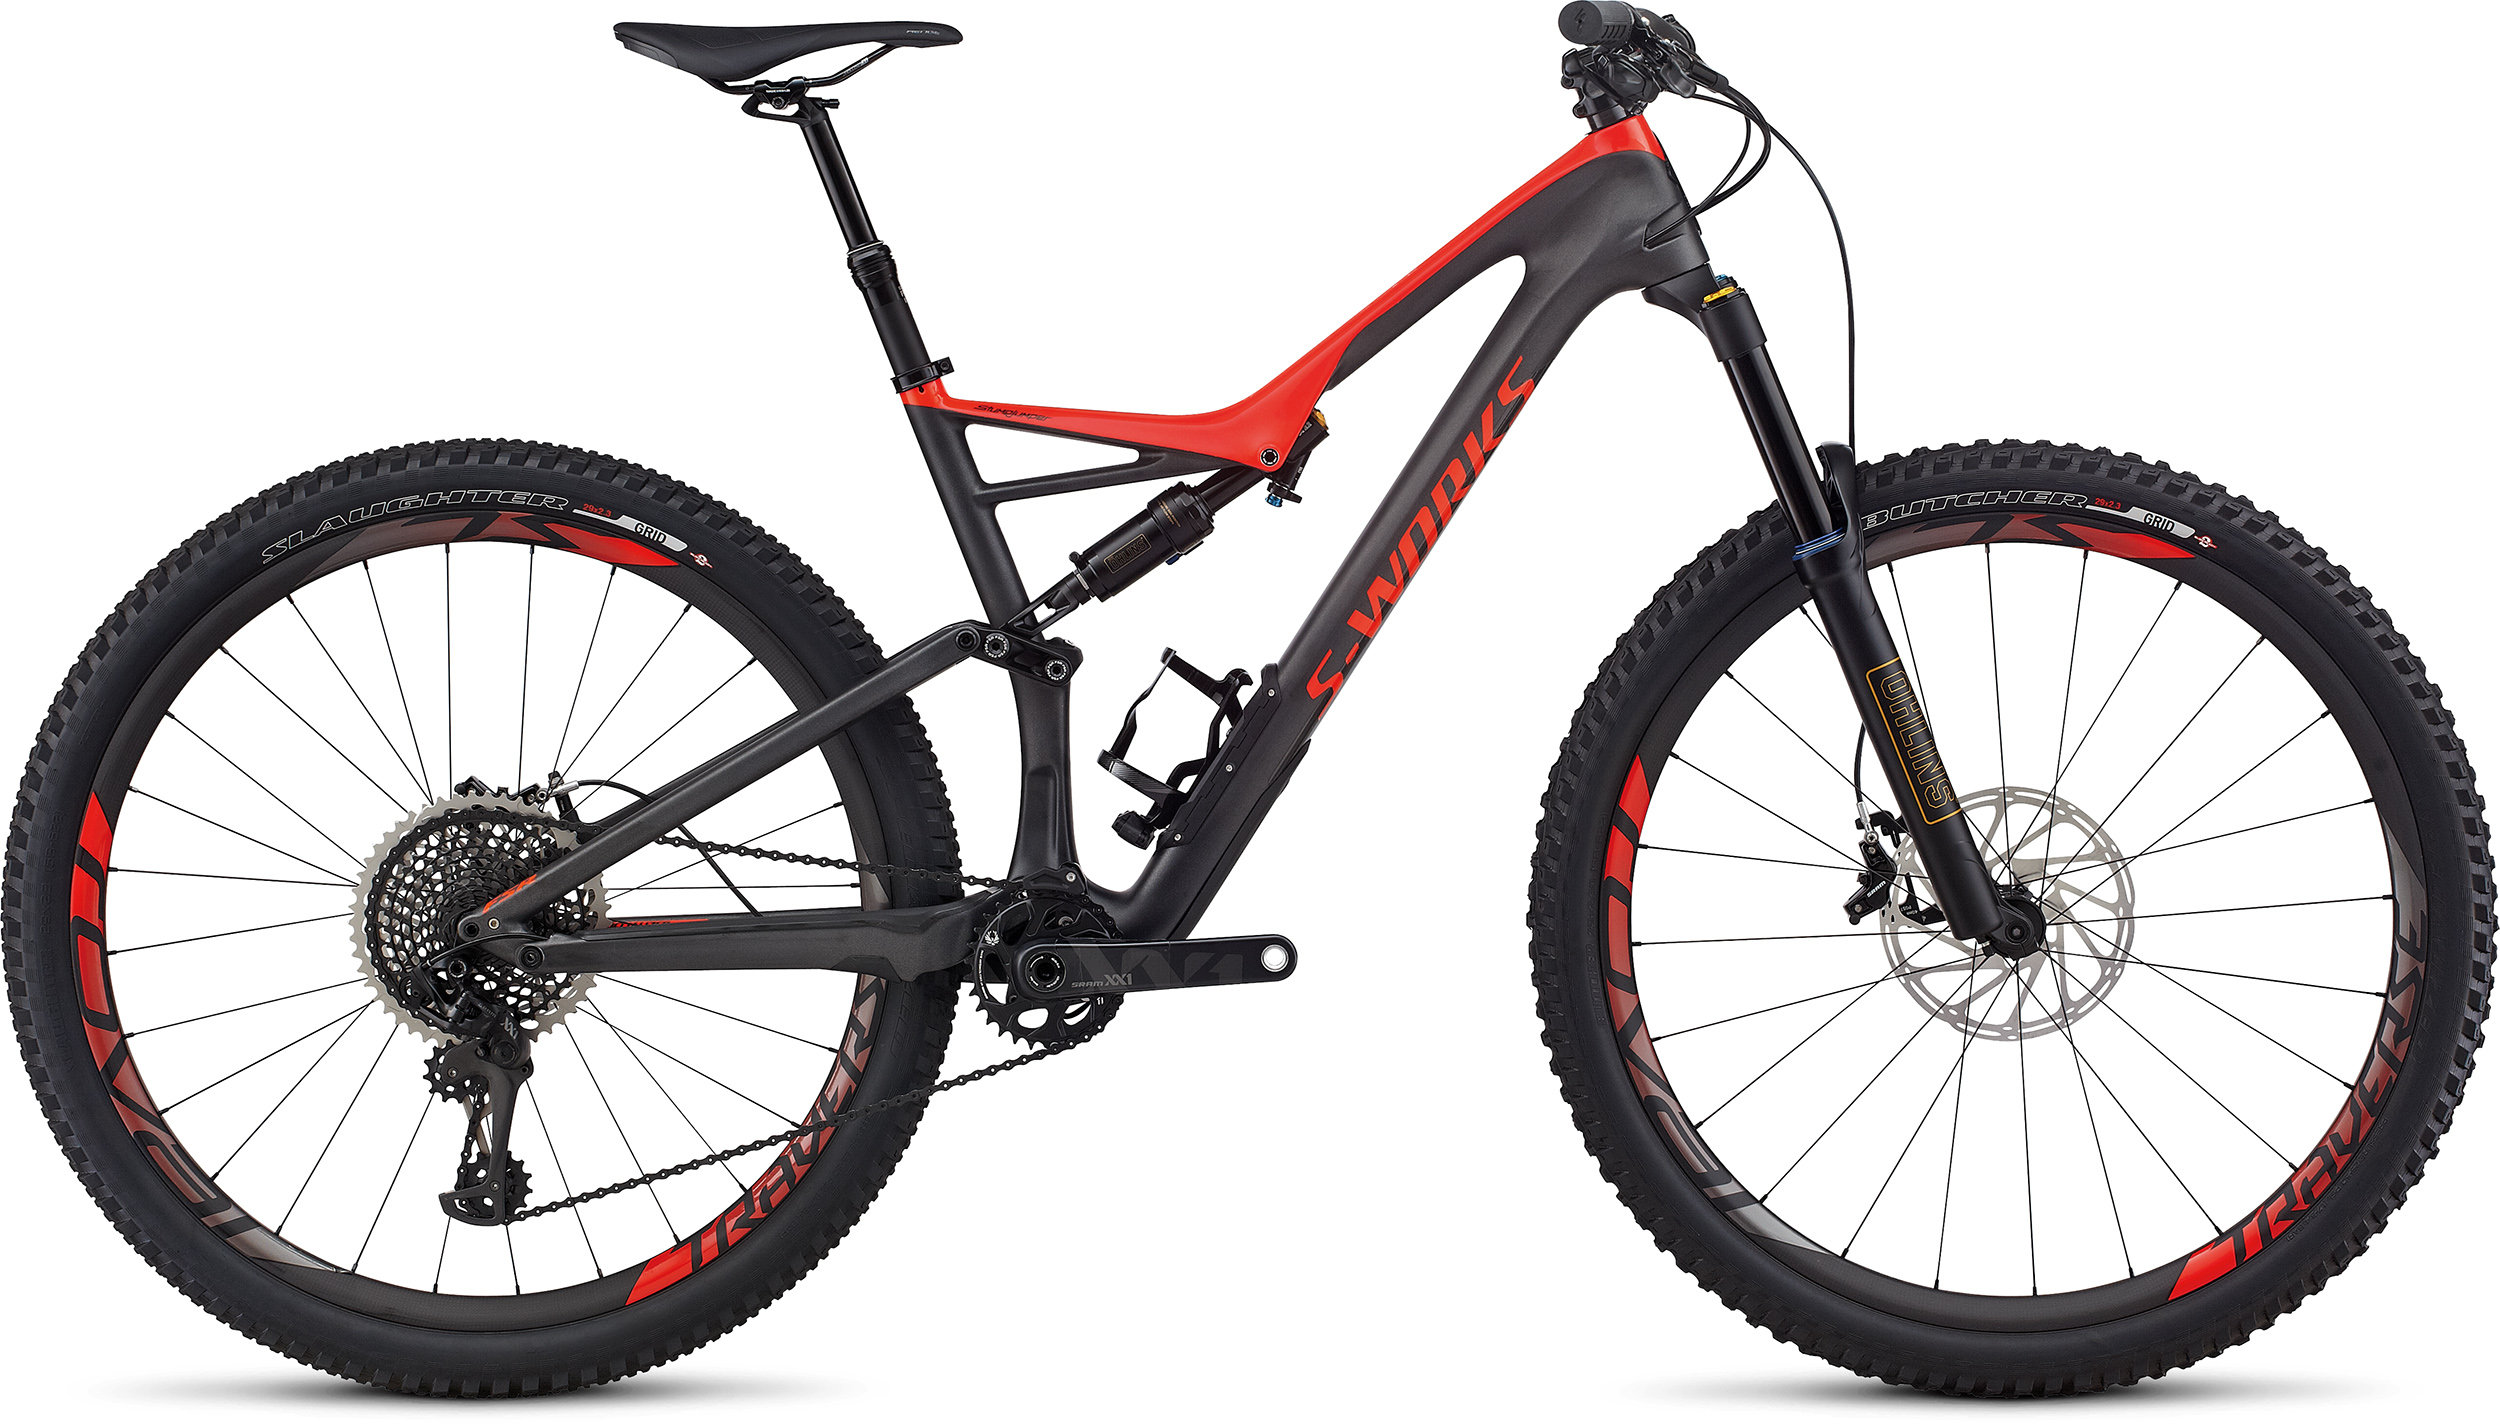 SPECIALIZED SW SJ FSR CARBON 29 SILTNT/RKTRED L - Bike Zone